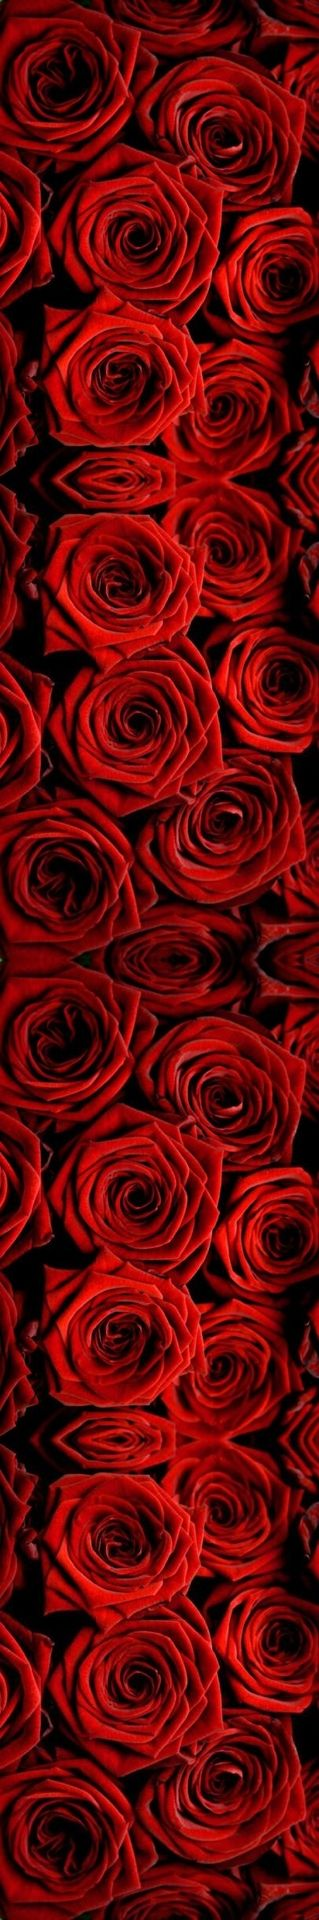 I'd want #MyFabValentine to get me a bunch of red roses. Red always makes me feel confident just like he do !          Happy Valentines!